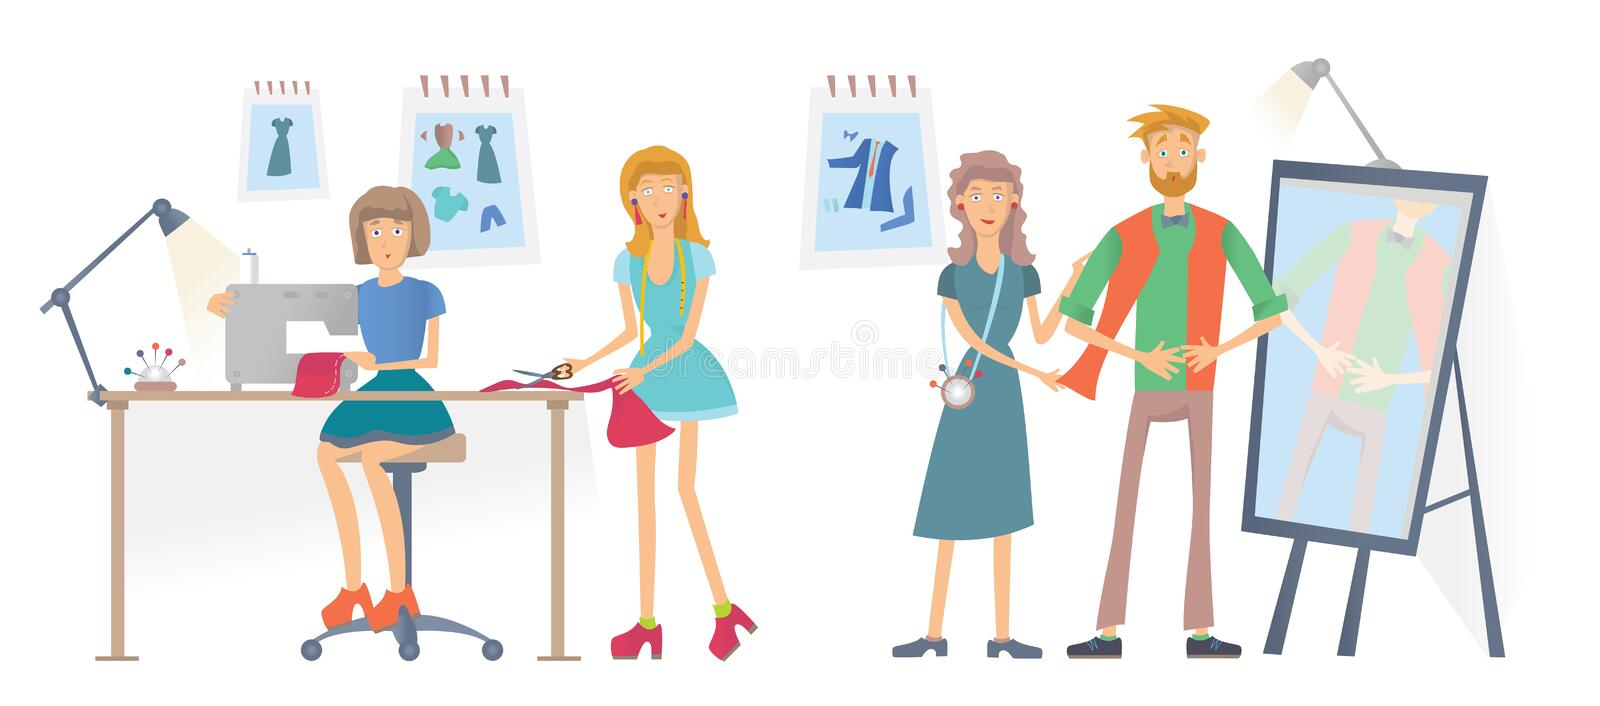 Fashion sewing Studio, Atelier. Women sew clothes with a sewing machine. A man tries on clothes. Vector illustration stock illustration